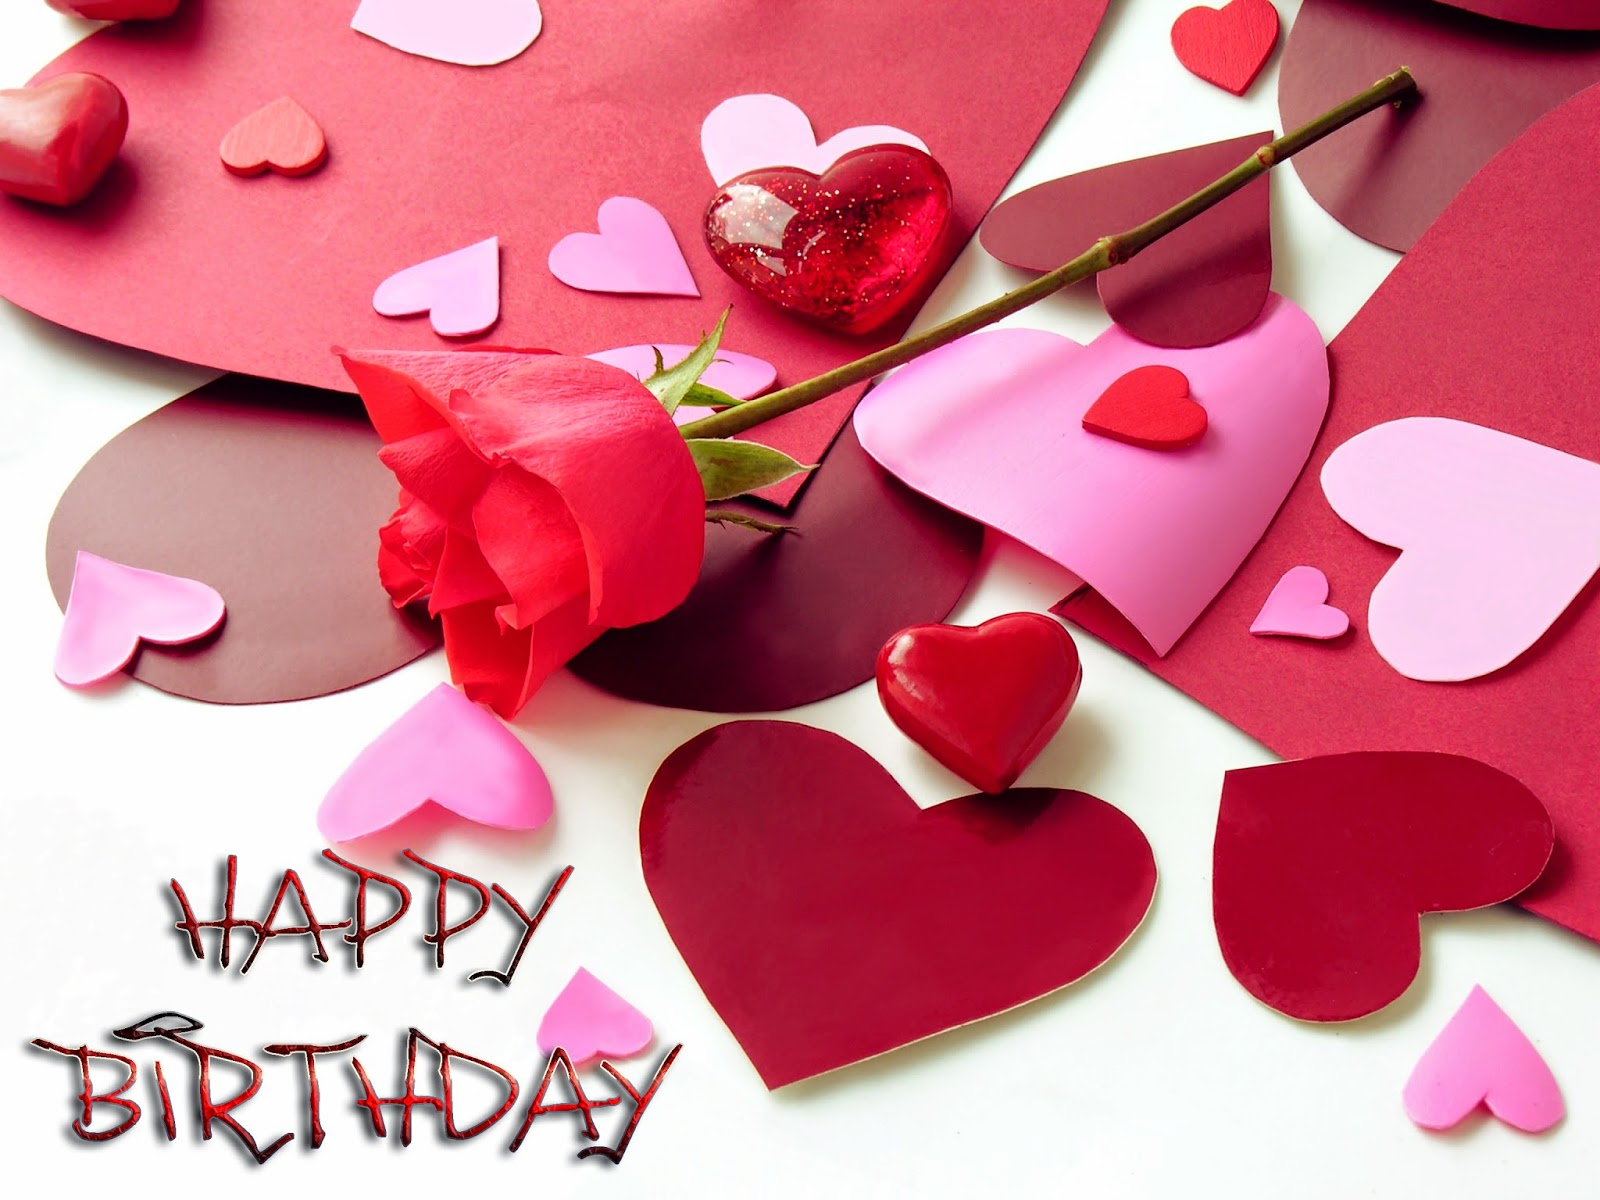 romantic birthday wallpaper ; loverly-happy-birthday-wishes-for-lovers